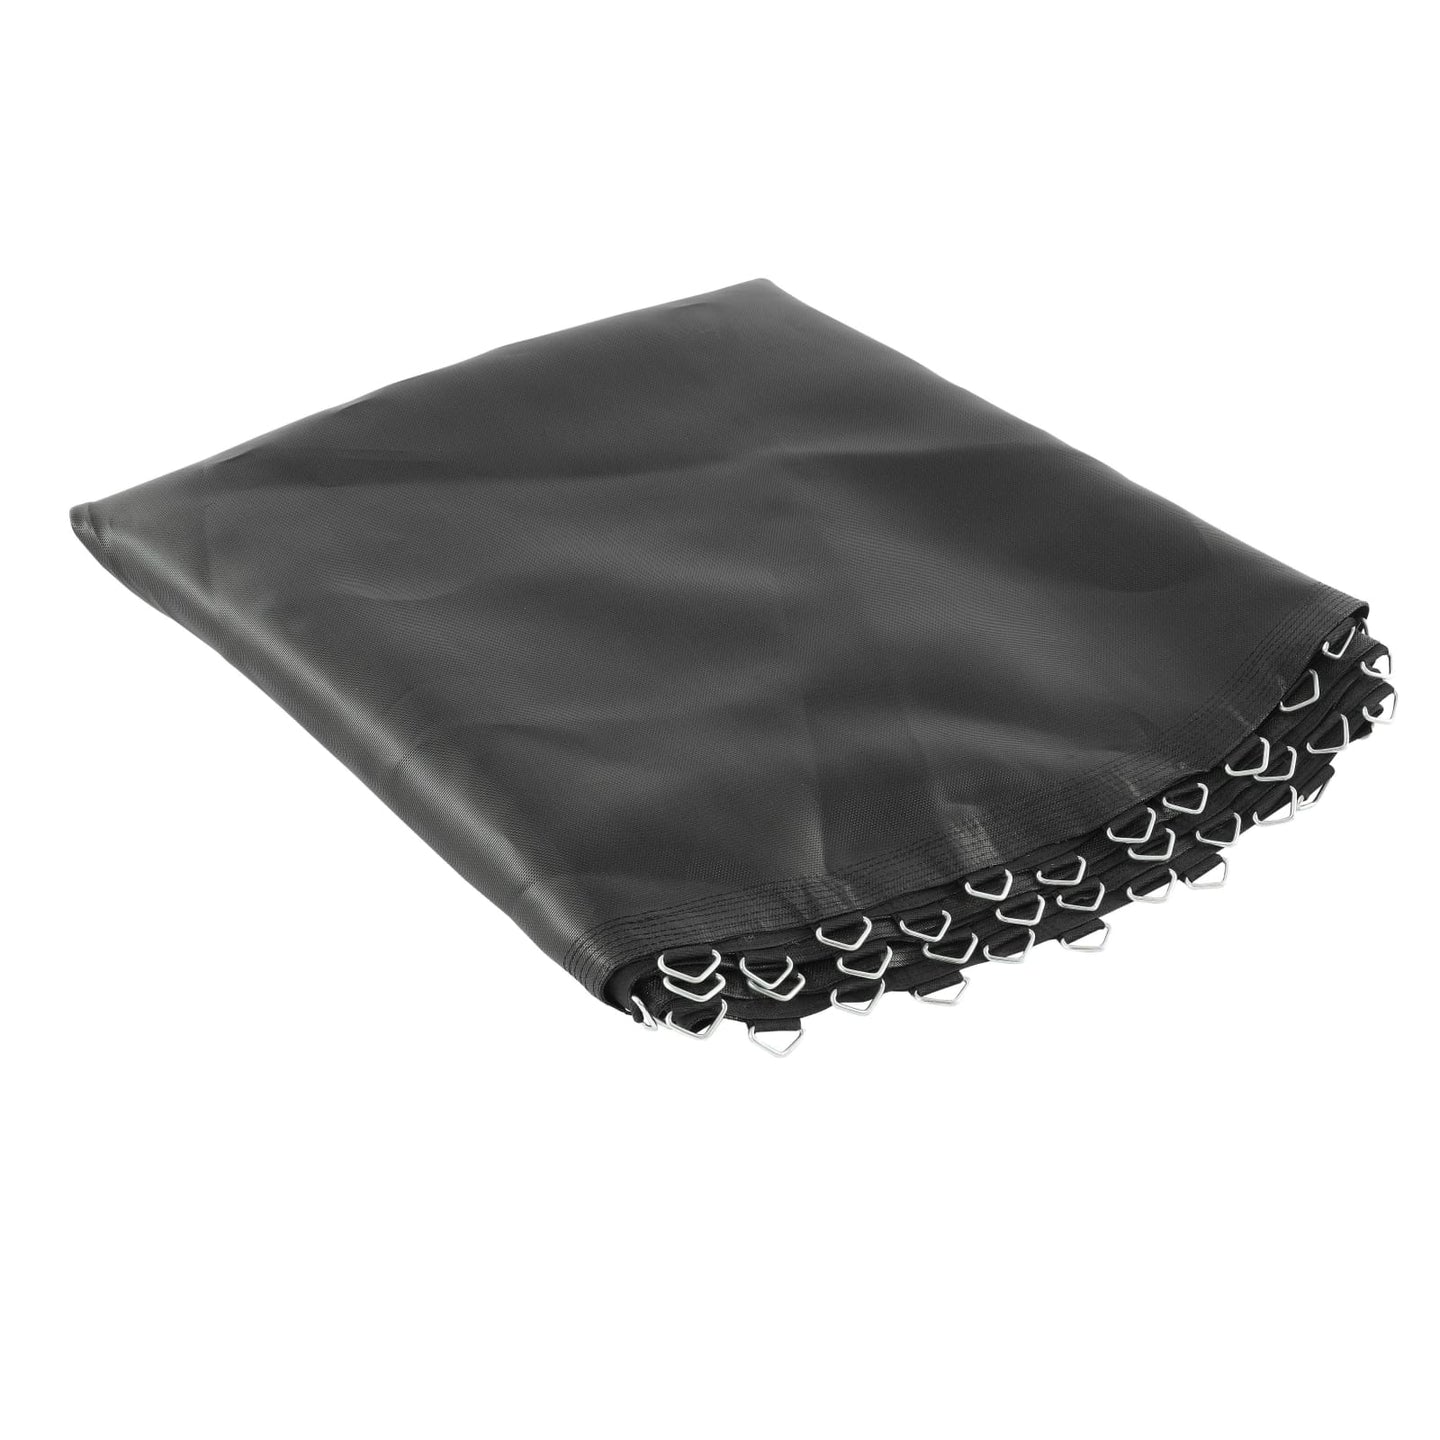 Upper Bounce Trampoline Replacement Jumping Mat Fits For 12 Ft. Round Frames W/ 80 V-Rings 7 Springs - Trampoline Replacements